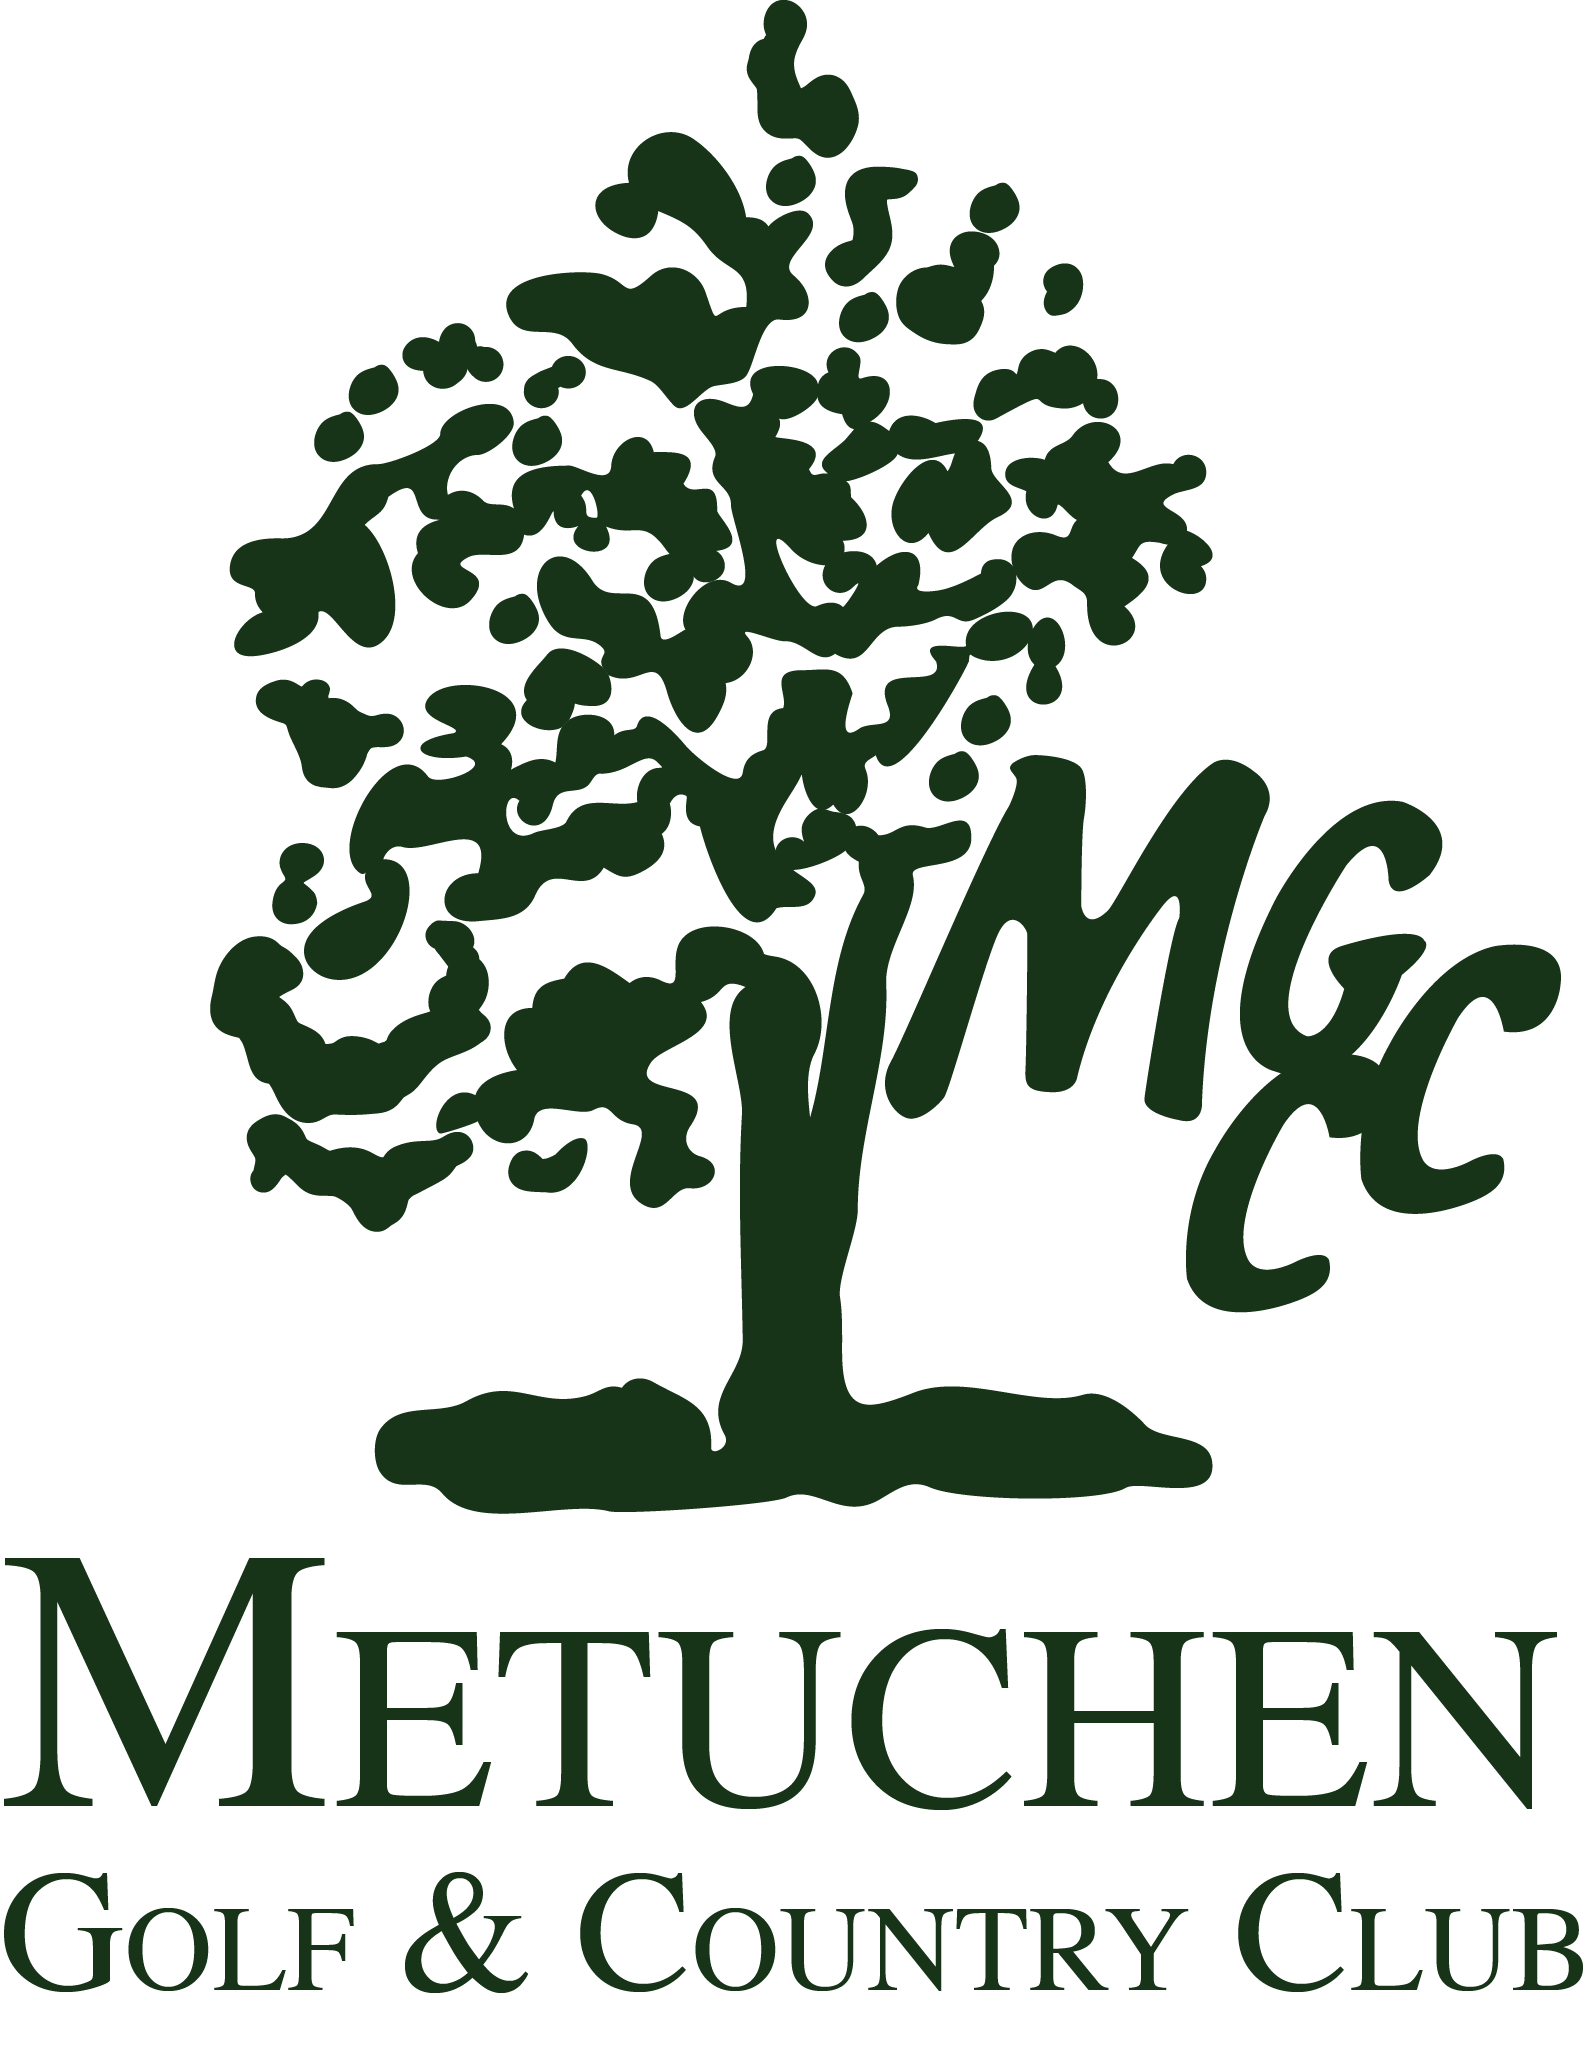 Metuchen Golf and Country Club